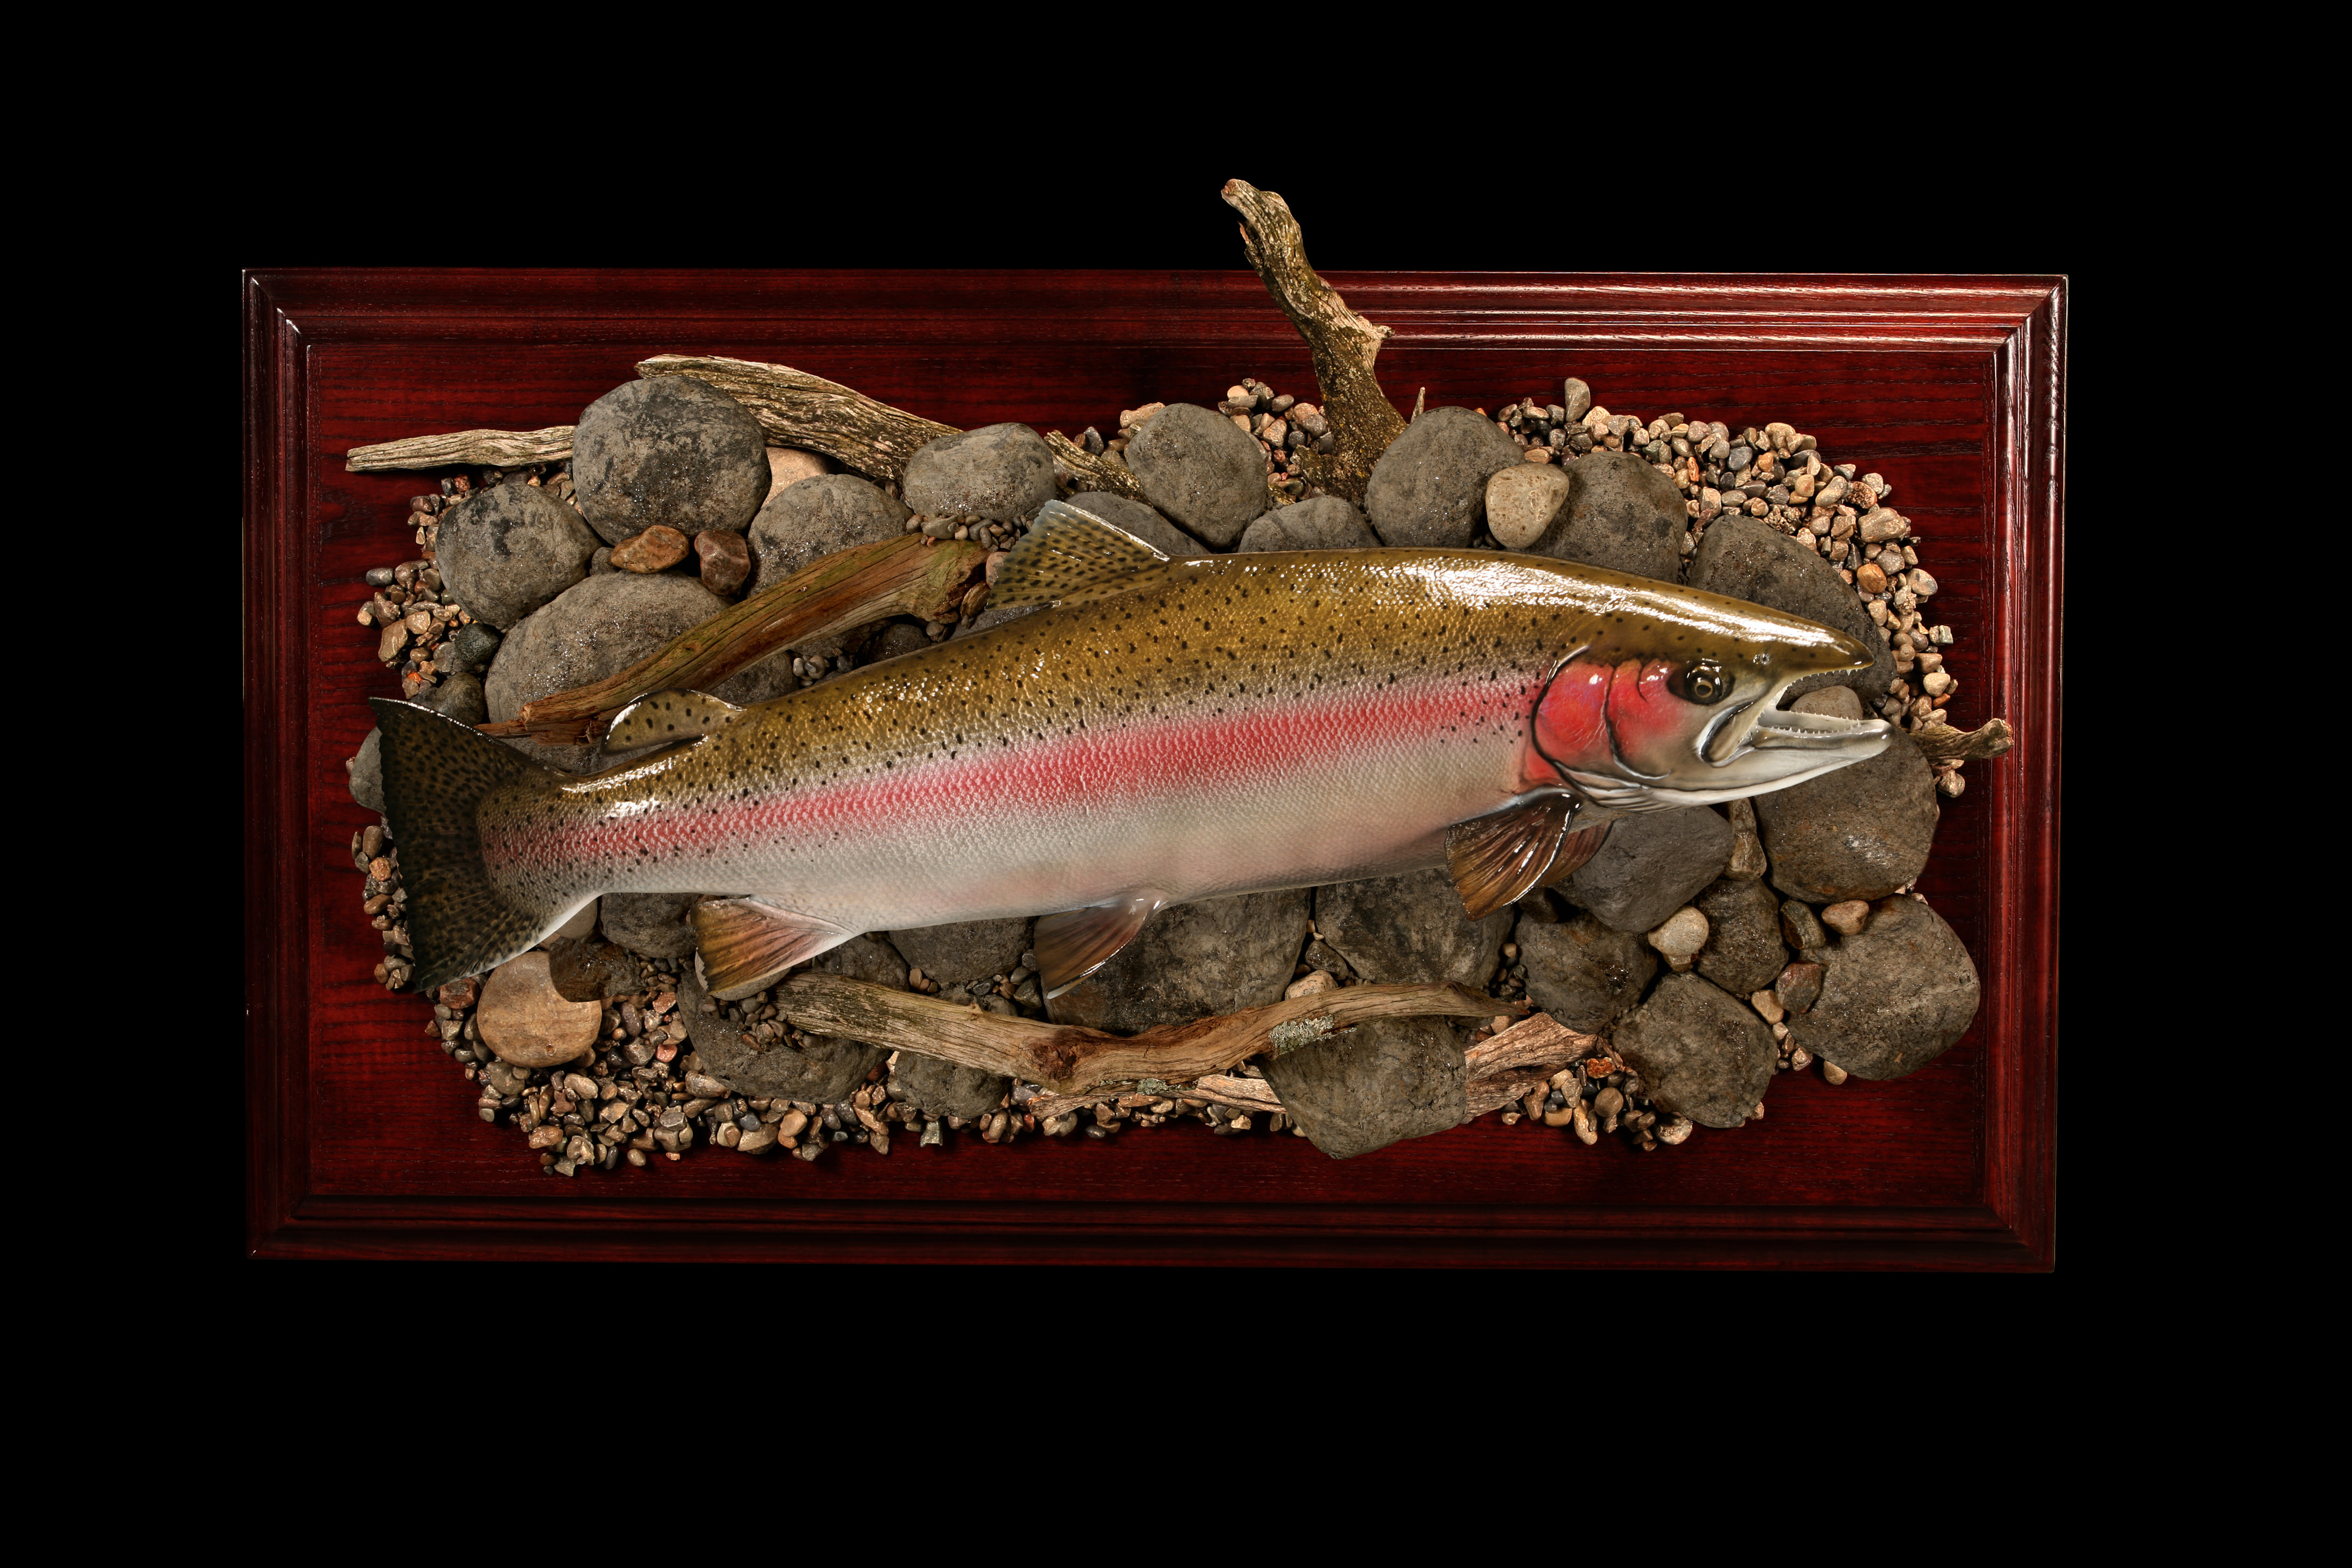 Fish Reproductions & Fish Mounts - Advanced Taxidermy